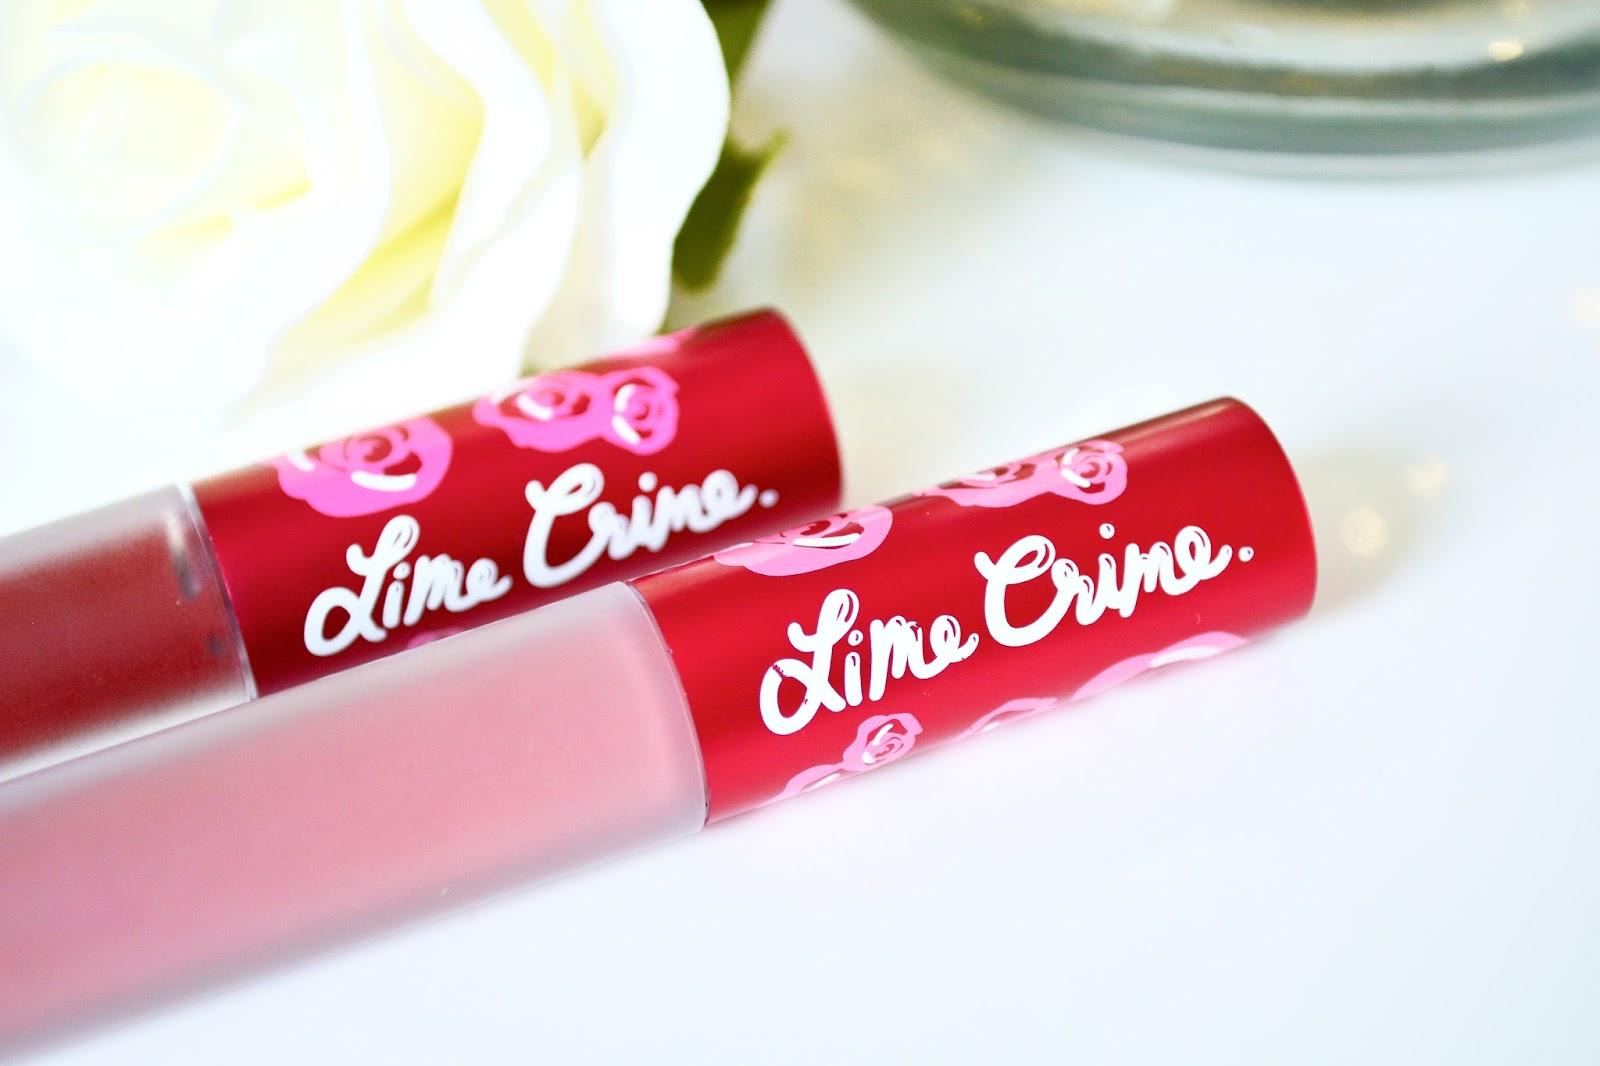 Lime Crime, Lime Crime Velvetines, Lime Crime Faded, Lime Crime Wicked, Velvetines, Lipstick